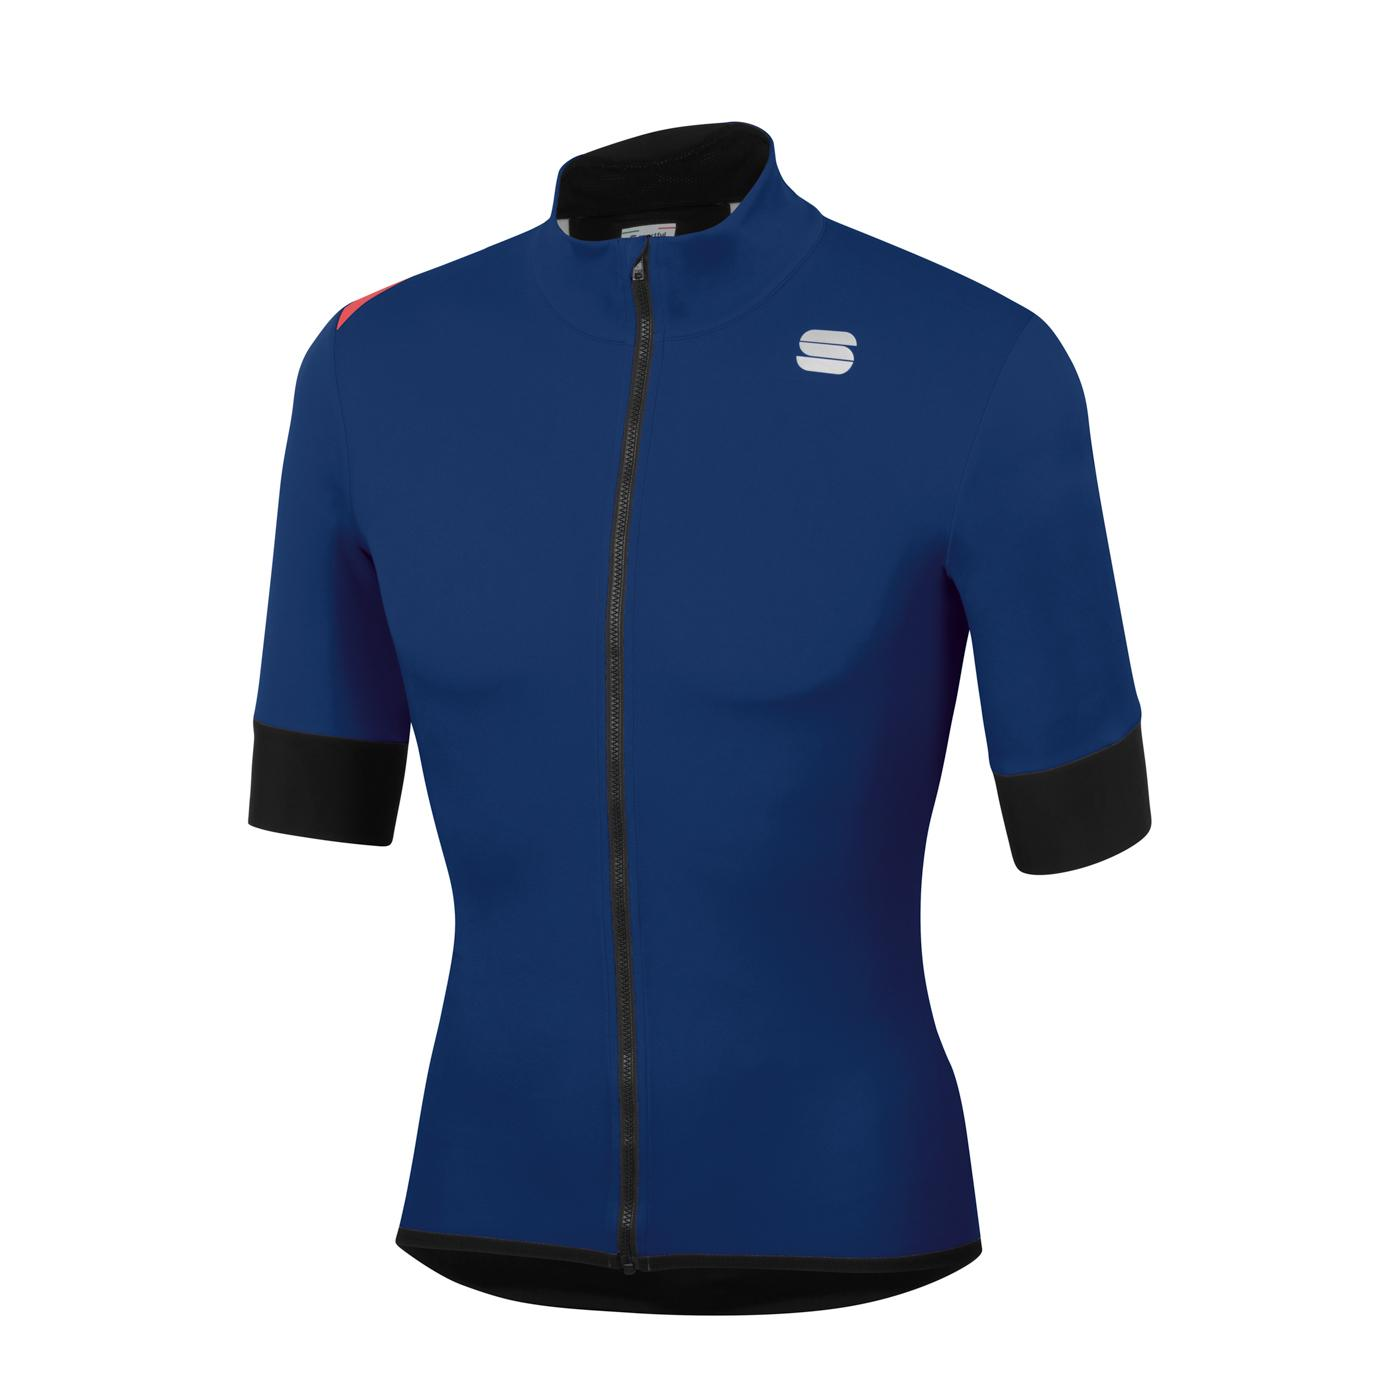 Sportful Fietsjack Korte mouwen Zeer sterk waterafstotend voor Heren Blauw - SF Fiandre Light No Rain Jacket S-Blue Twilight